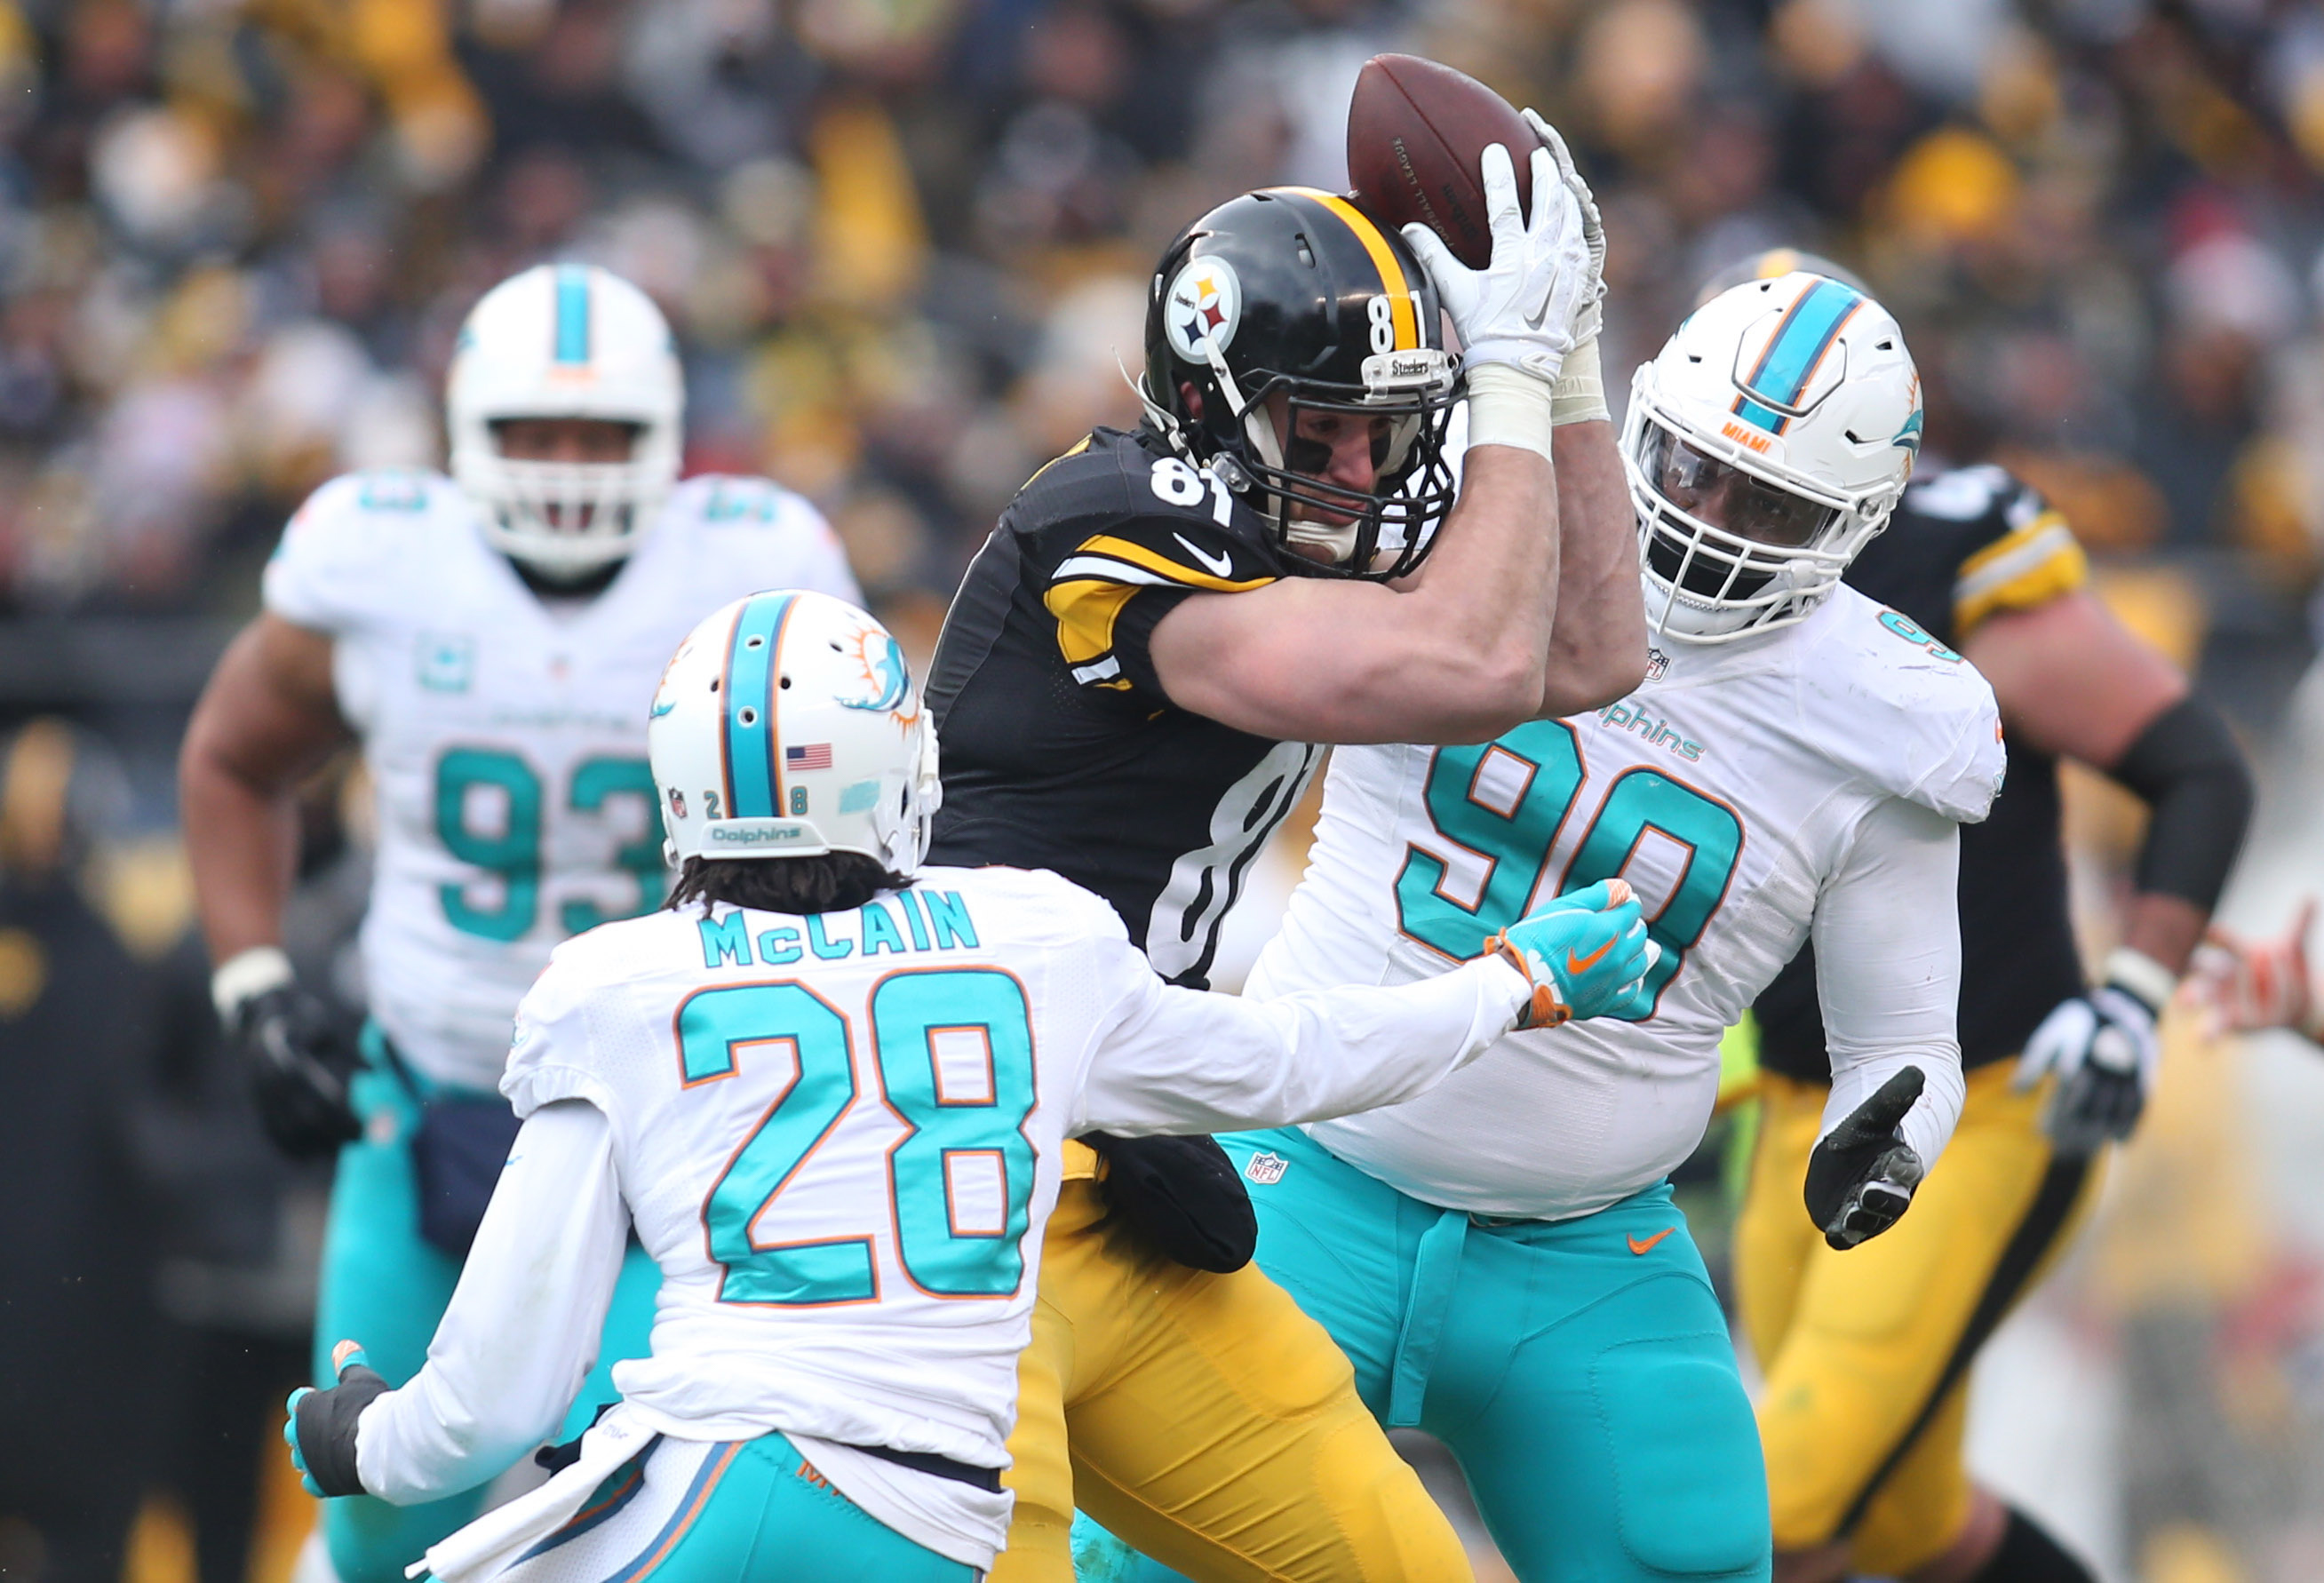 9804489-nfl-afc-wild-card-miami-dolphins-at-pittsburgh-steelers